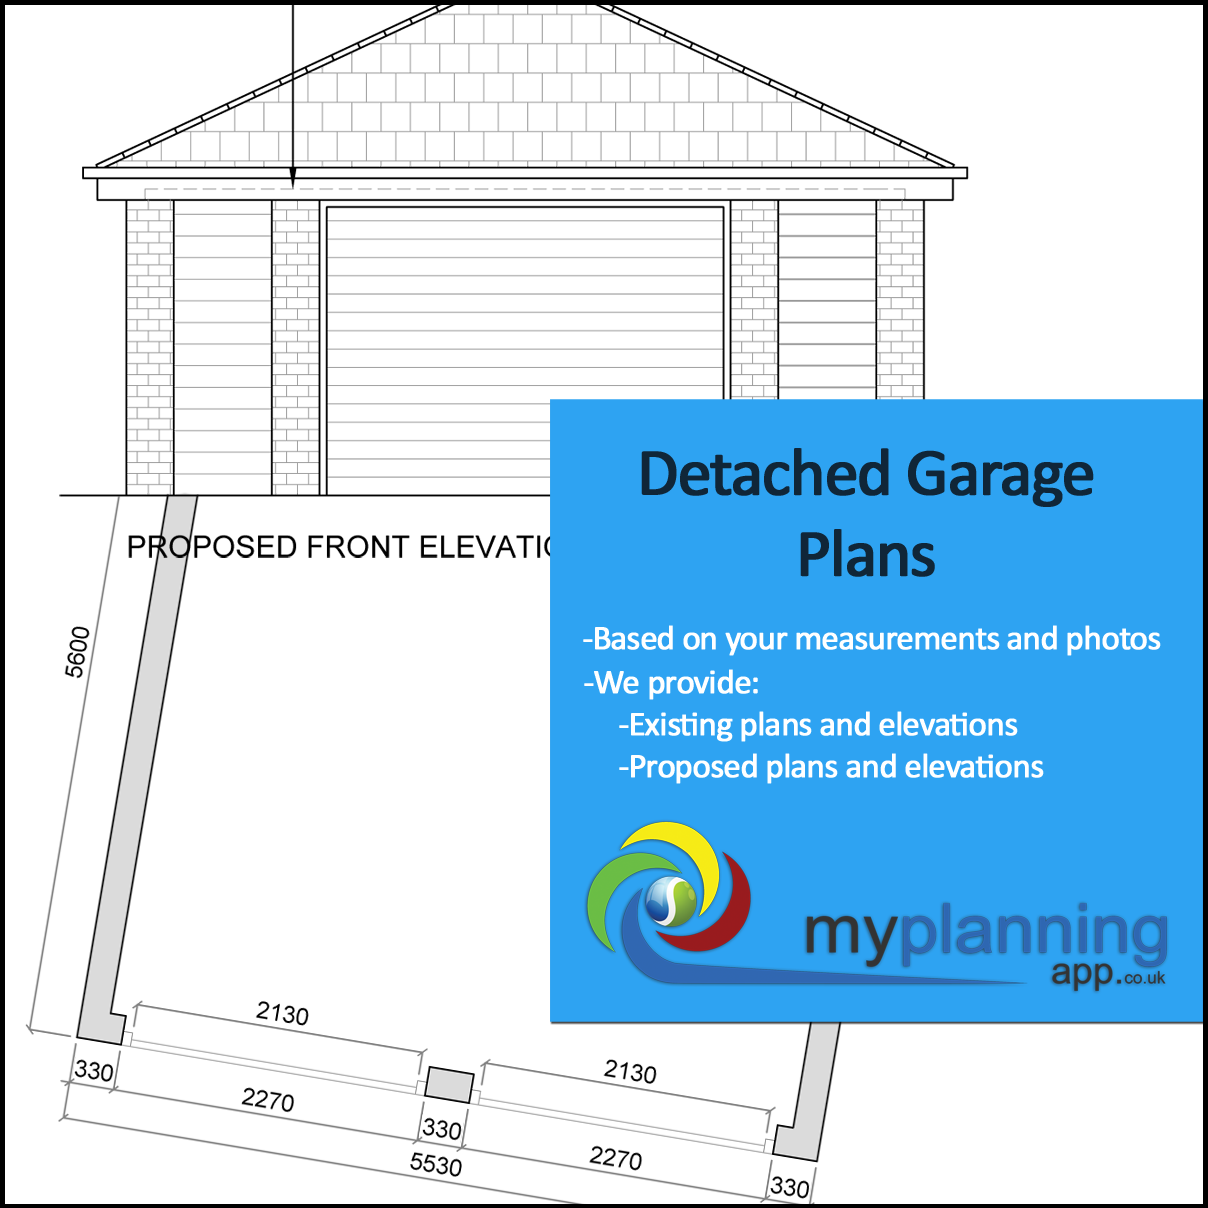 Detached garage plans my planning application for Garage planning software